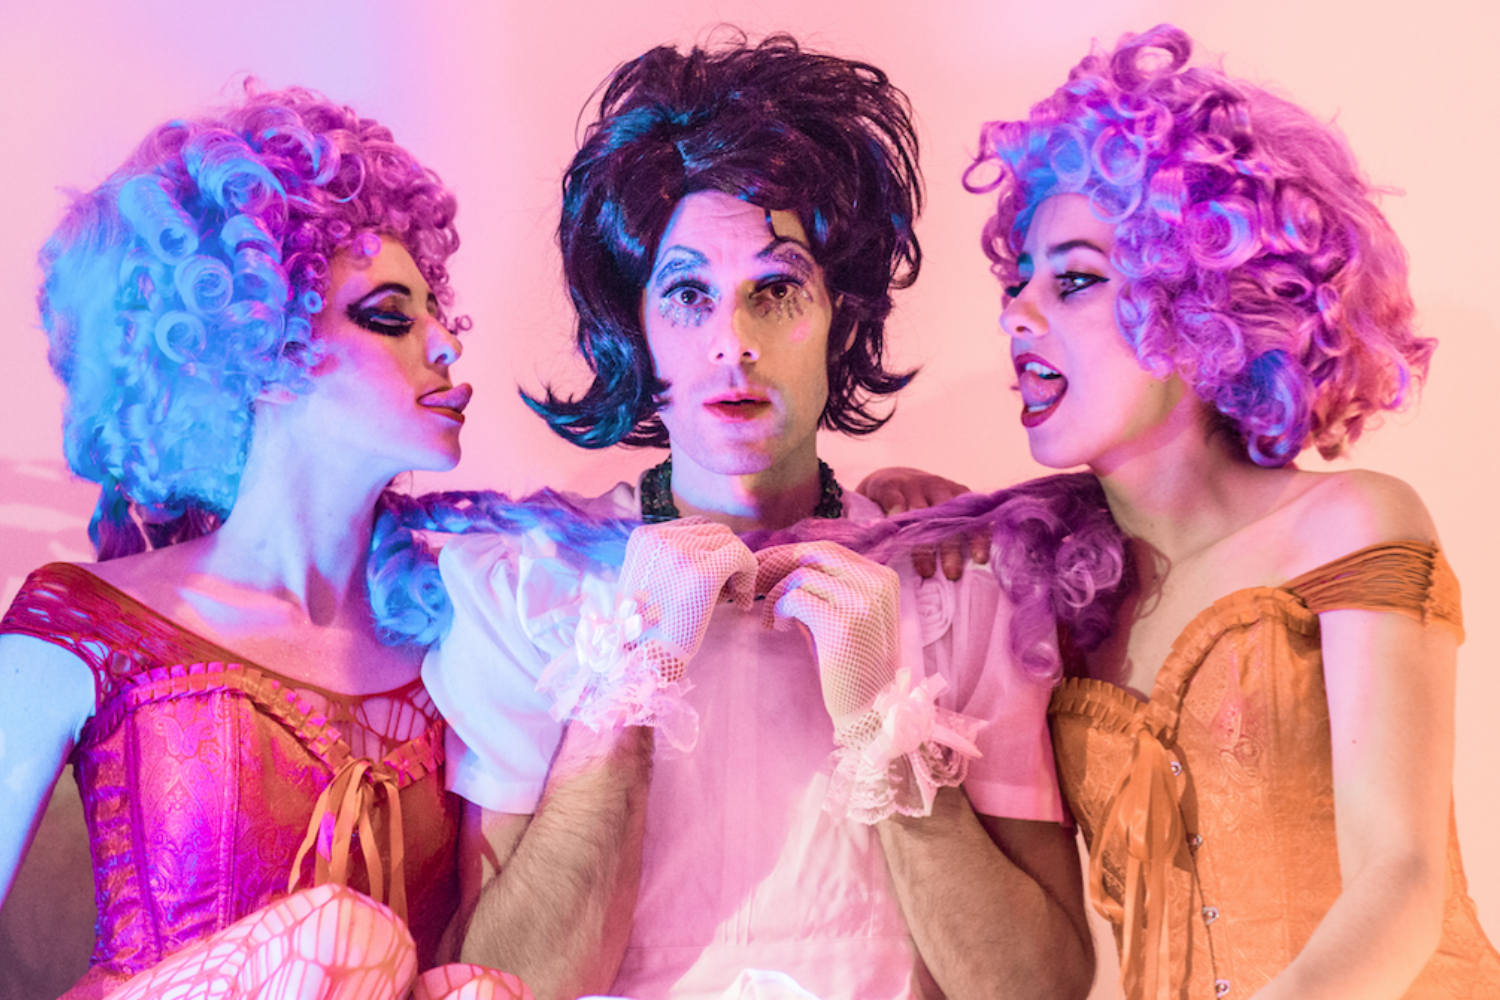 Of Montreal bring the sax appeal with 'my fair lady'